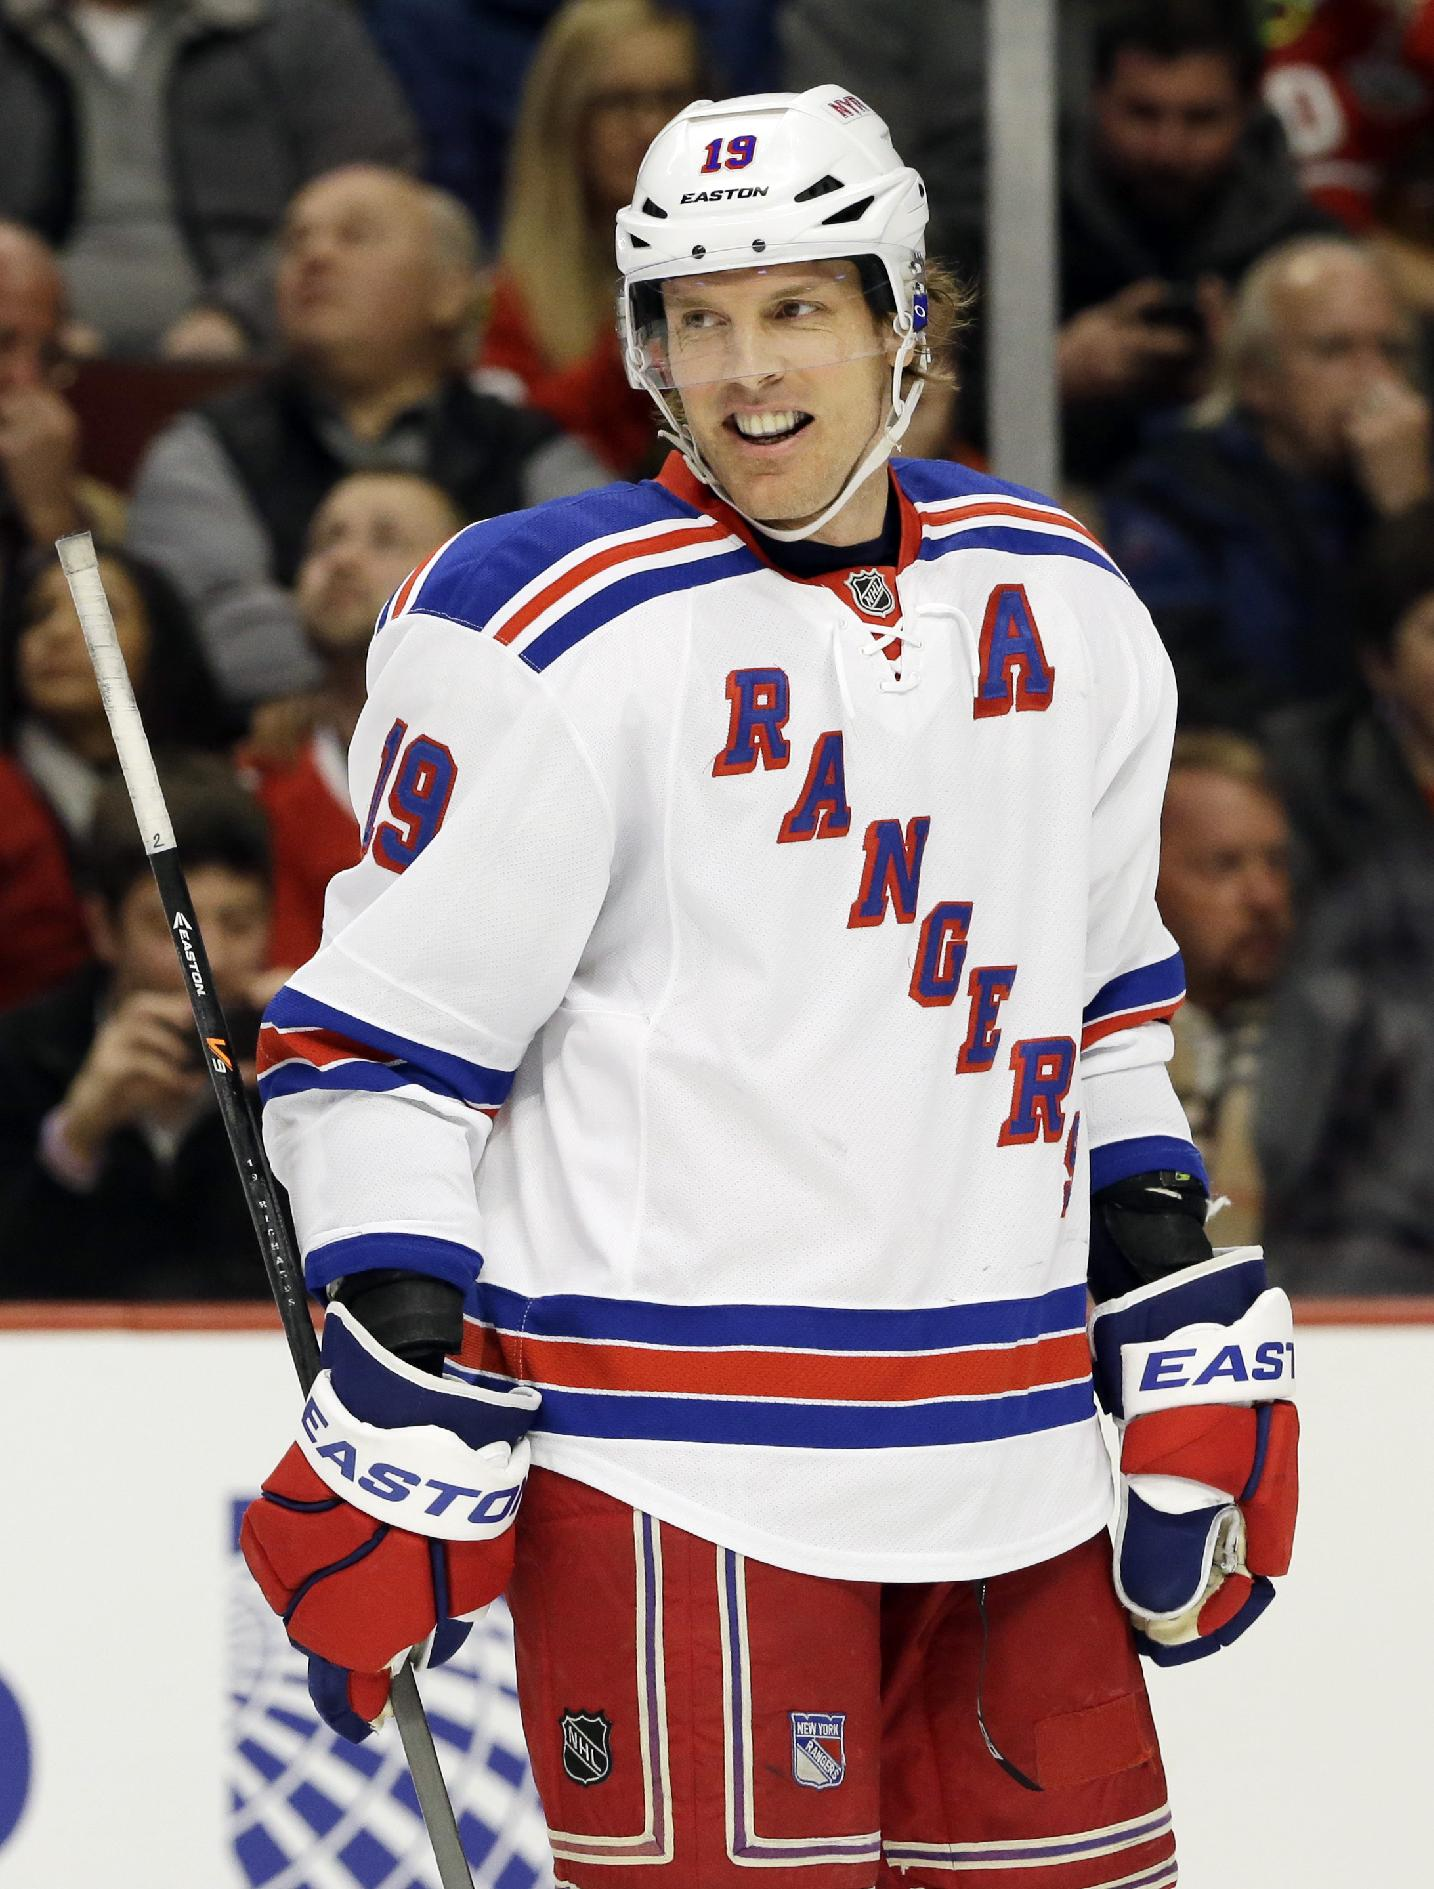 New York Rangers' Brad Richards (19) smiles as he looks to teammates during the first period of an NHL hockey game against the Chicago Blackhawks in Chicago, Wednesday, Jan. 8, 2014